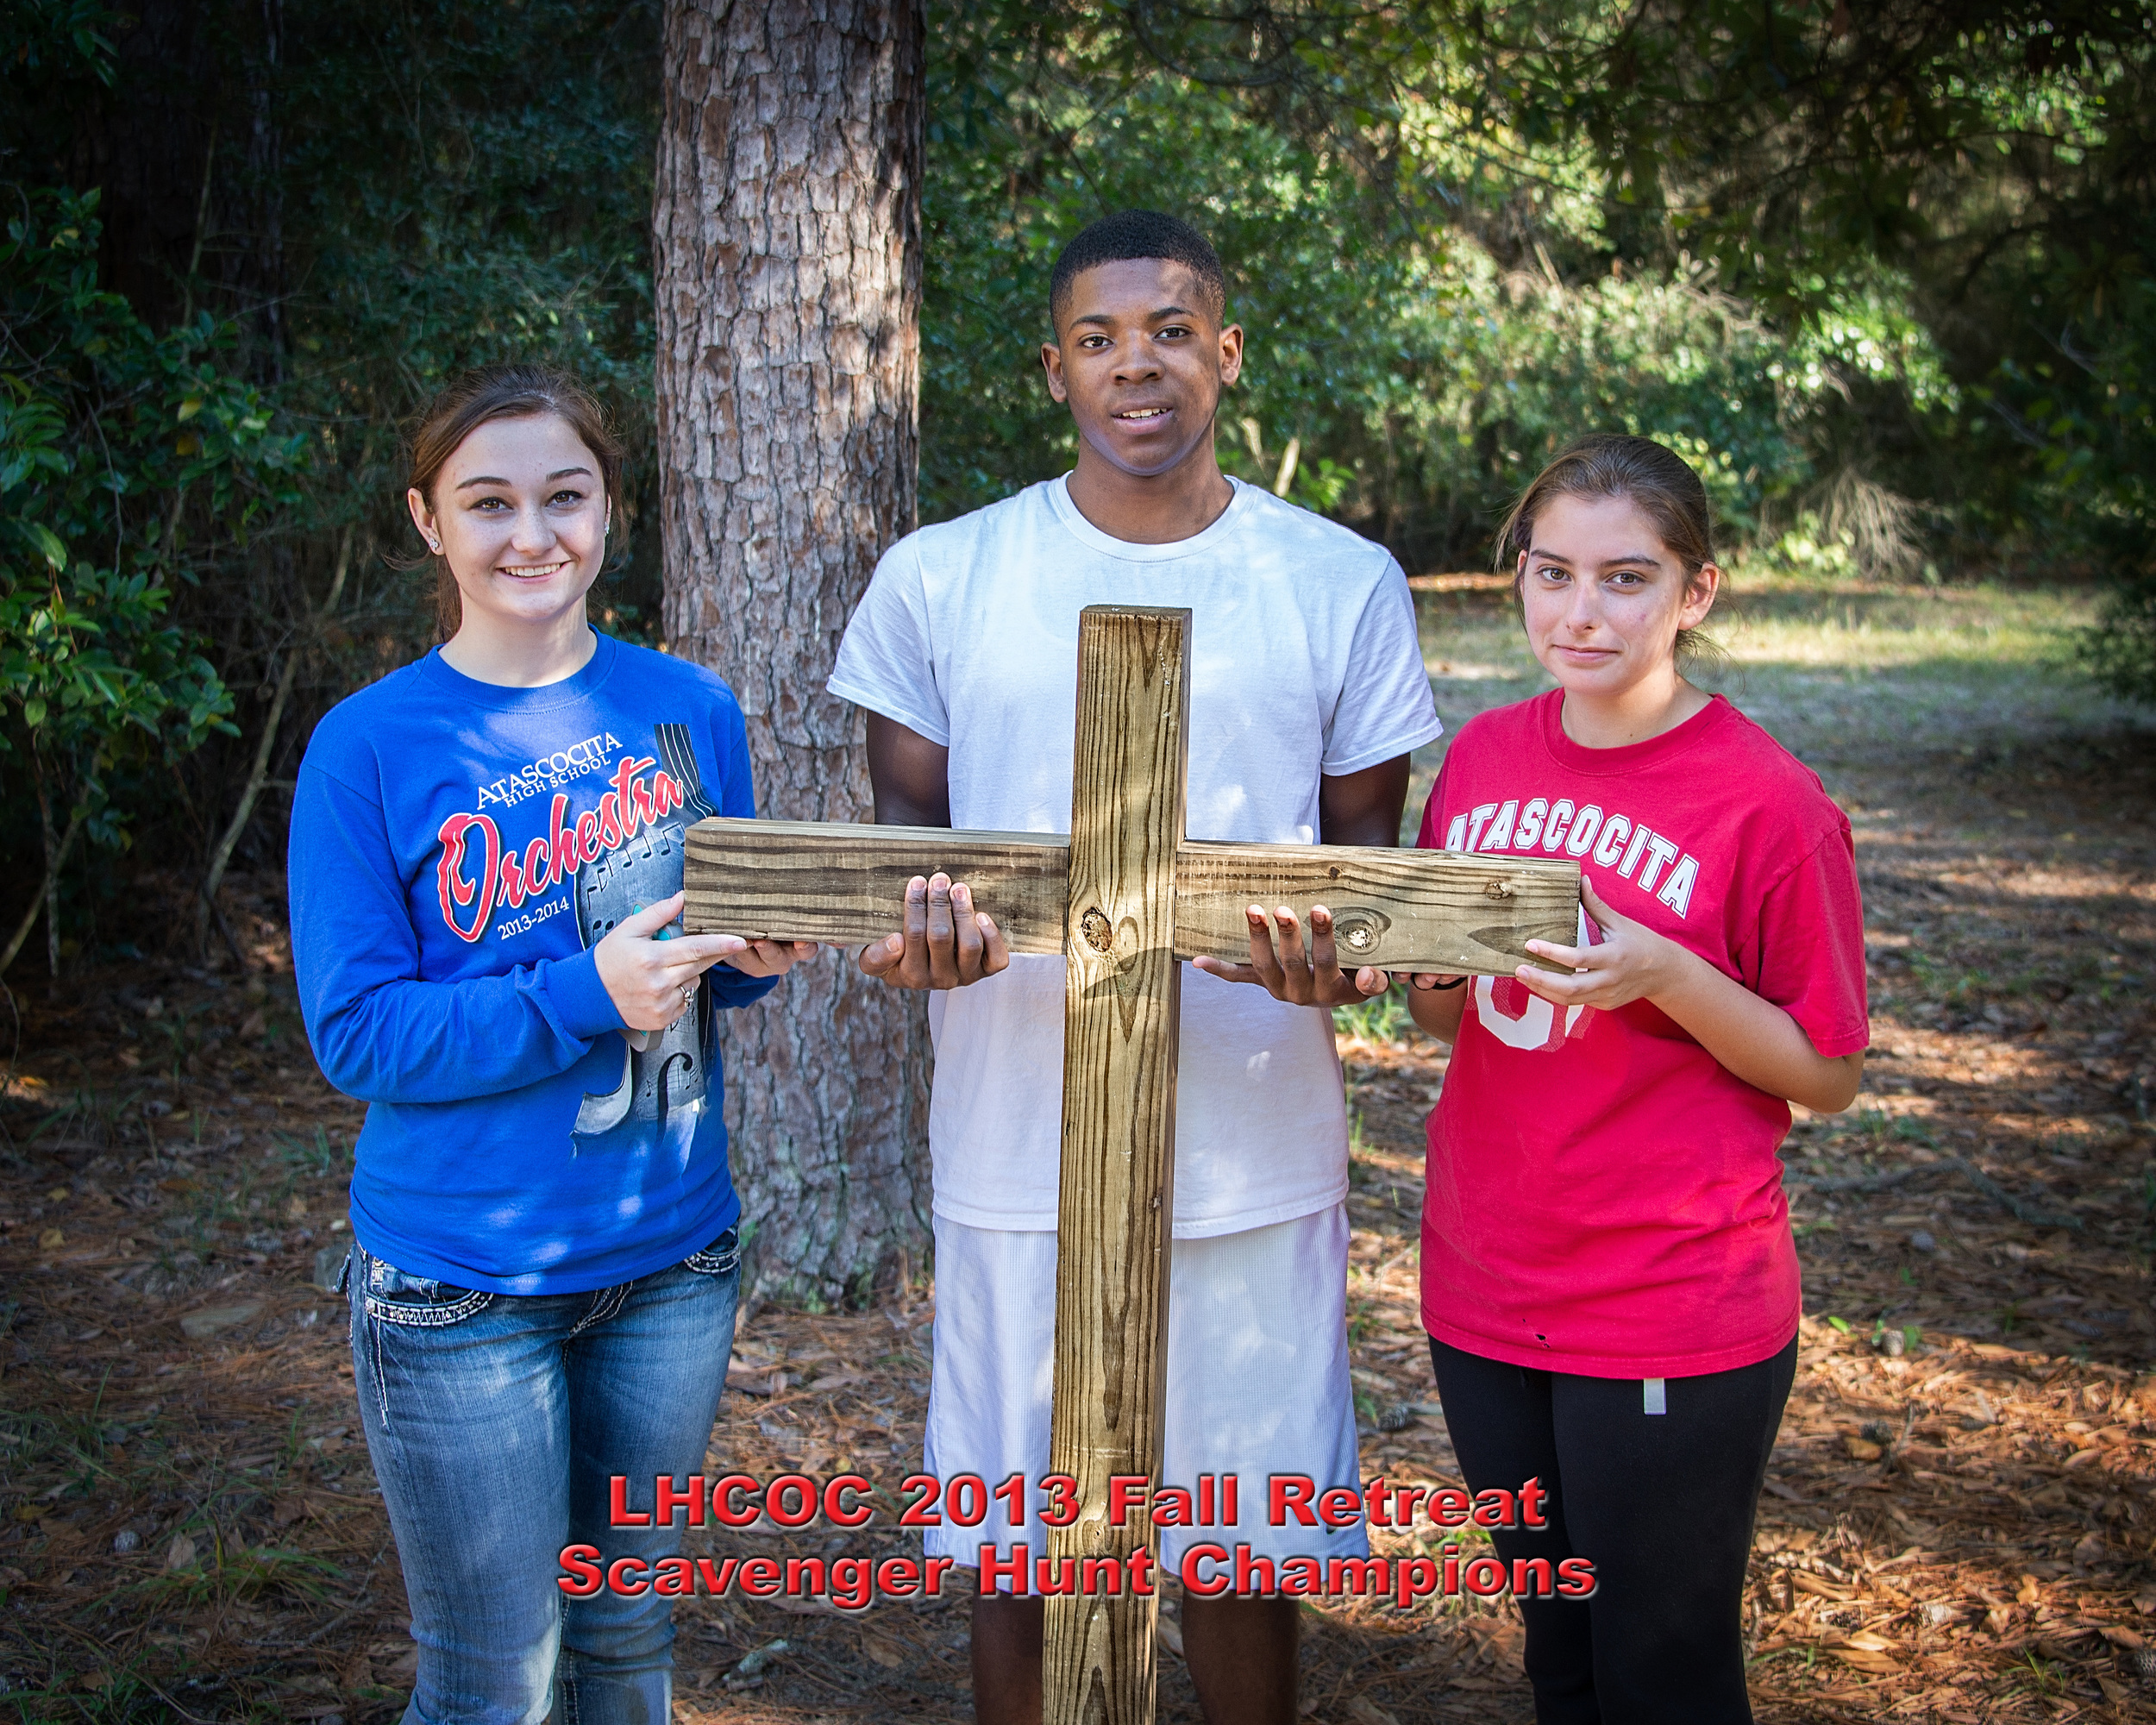 High School Retreats   - We have a youth retreat each spring and fall that gives high school students an opportunity to develop their leadership skills and deepen their friendships.